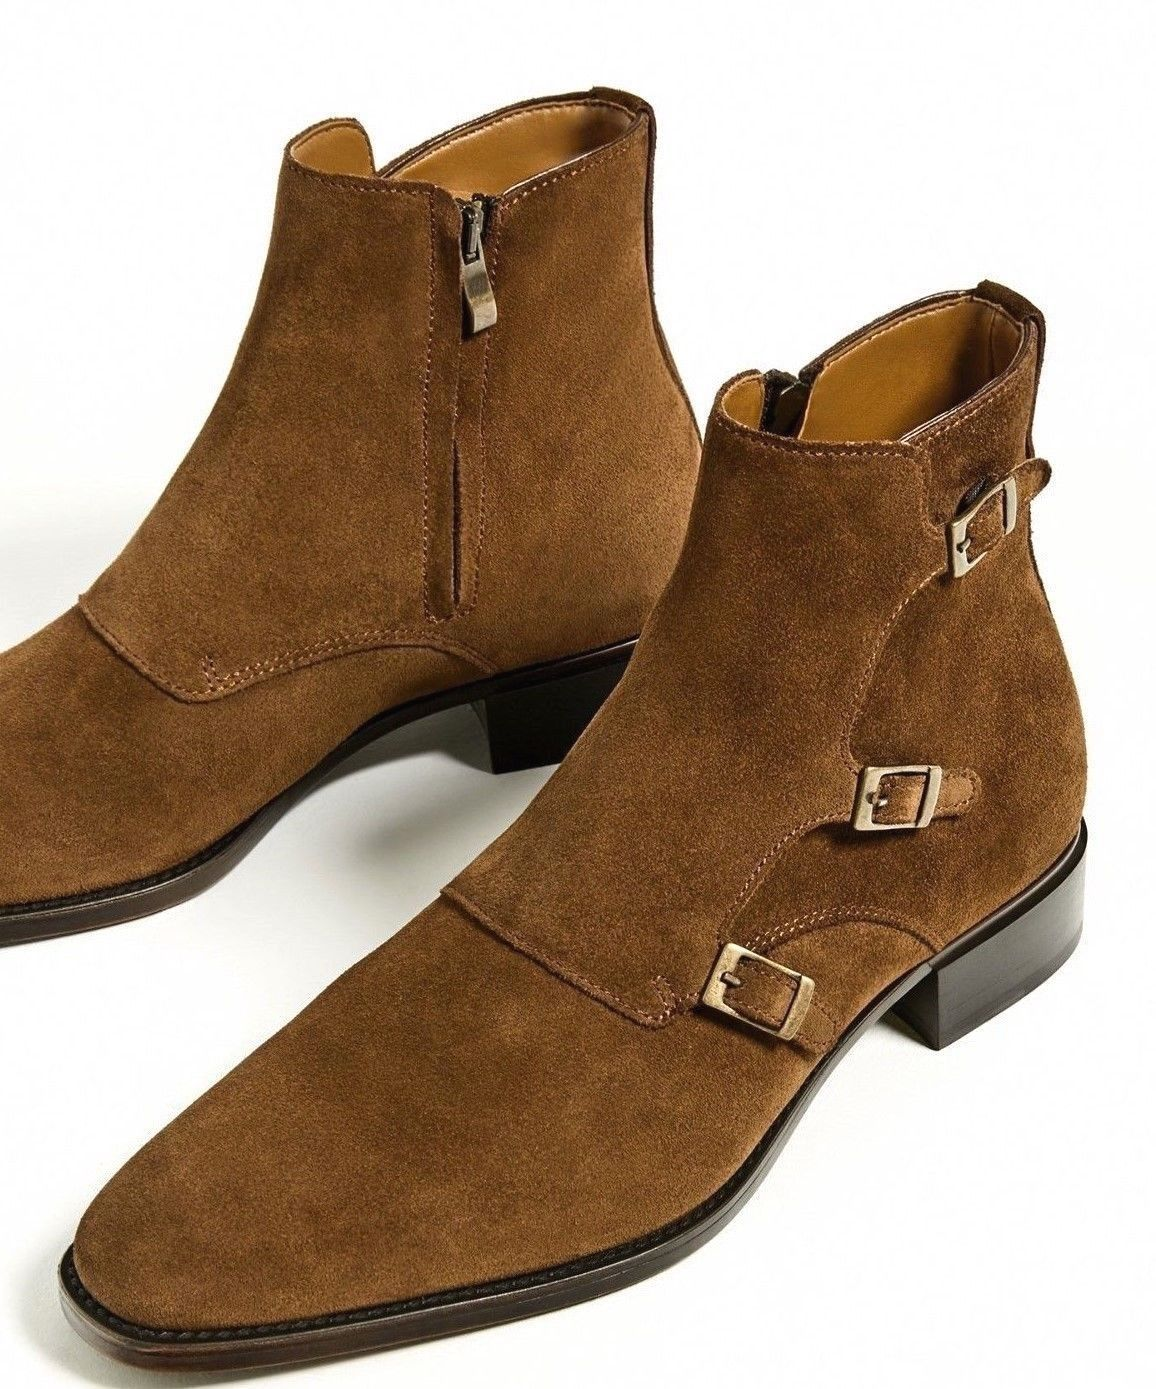 d00387ff43d Handmade Men suede Leather Boots Mens Brown Three Buckle Fashion Ankle High  Boot